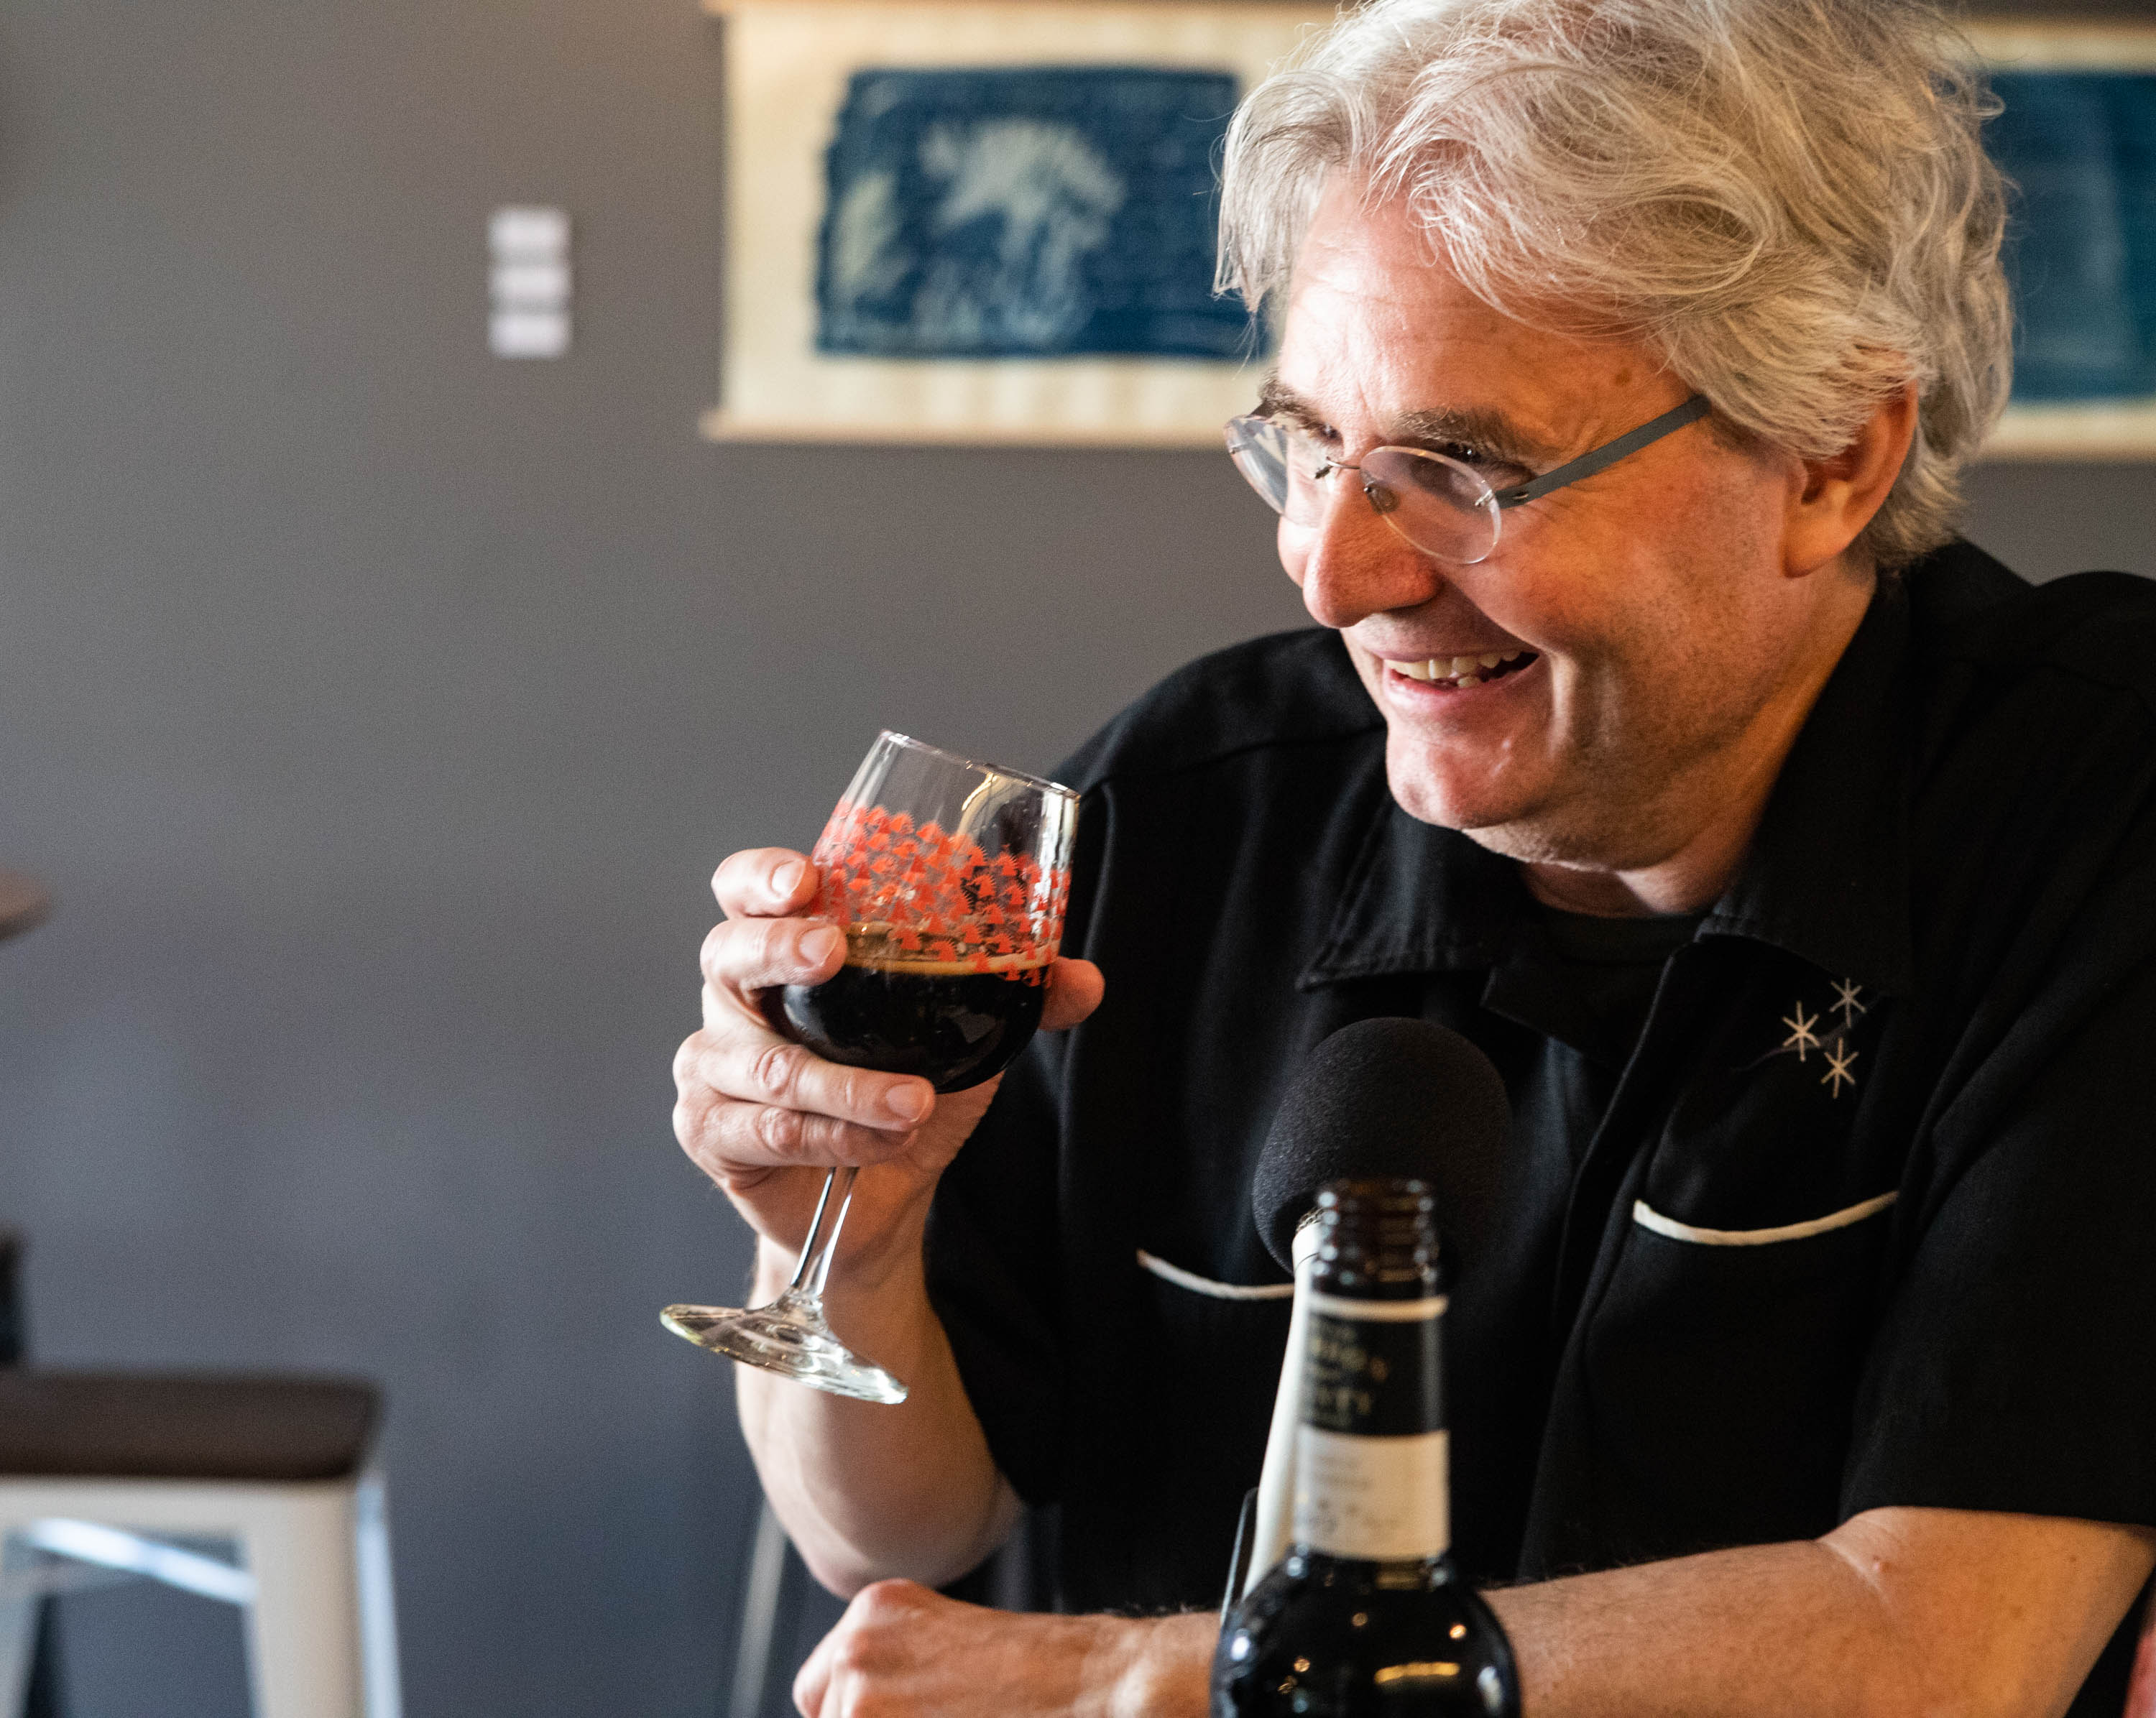 Steve Paulson samples Goose Island Bourbon County Brand Stout (2014 and 2017) while chatting at the Funk Factory Geuzeria in Madison, Wisconsin. <em>Mark Riechers&nbsp;(TTBOOK)</em>